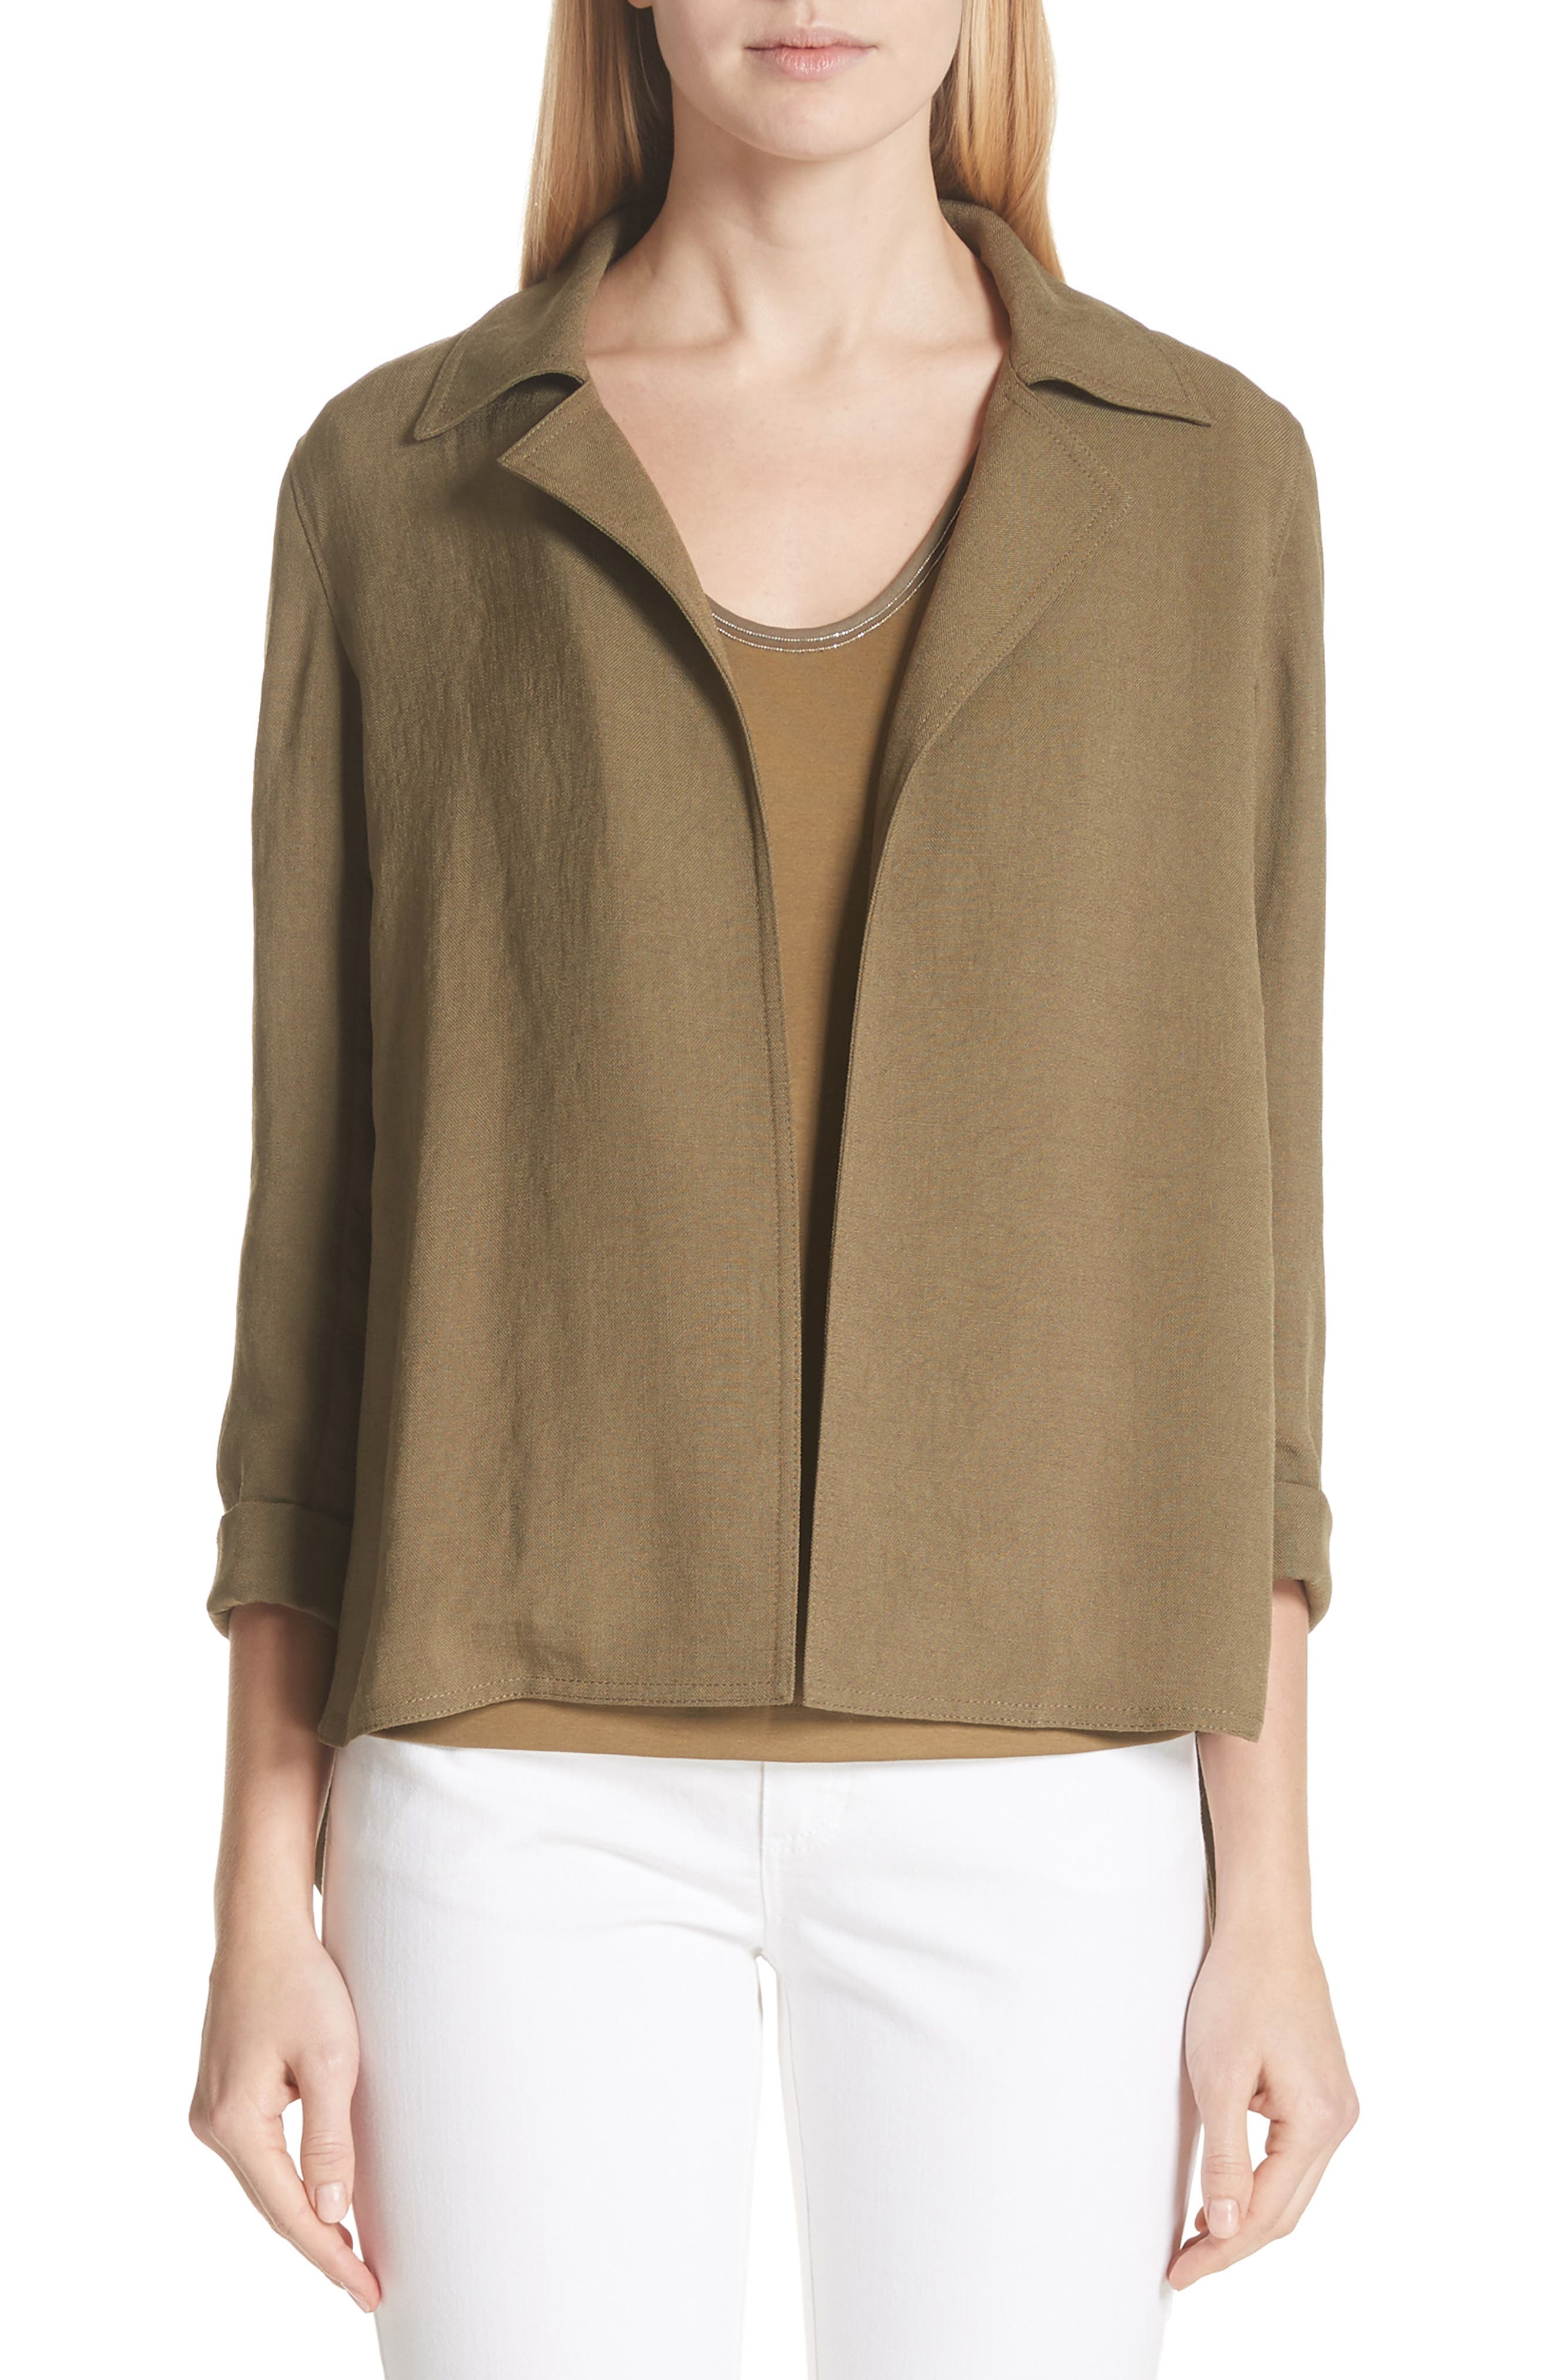 Alternate Image 1 Selected - Lafayette 148 New York Grant Altruistic Cloth Jacket